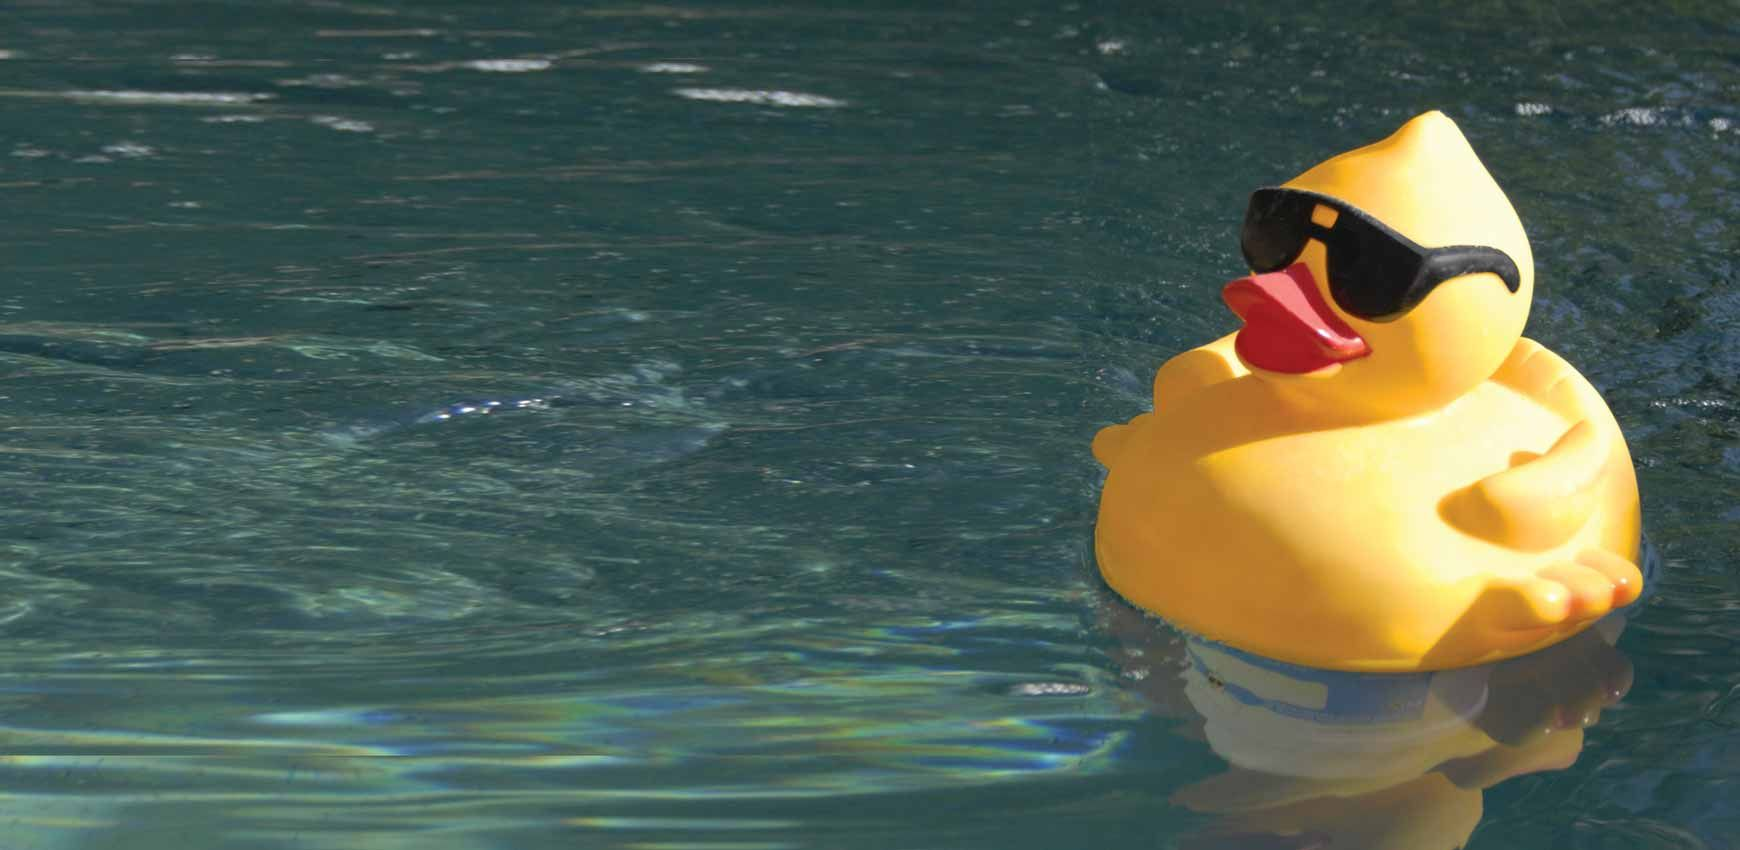 Rubber Ducky Race for Hospice